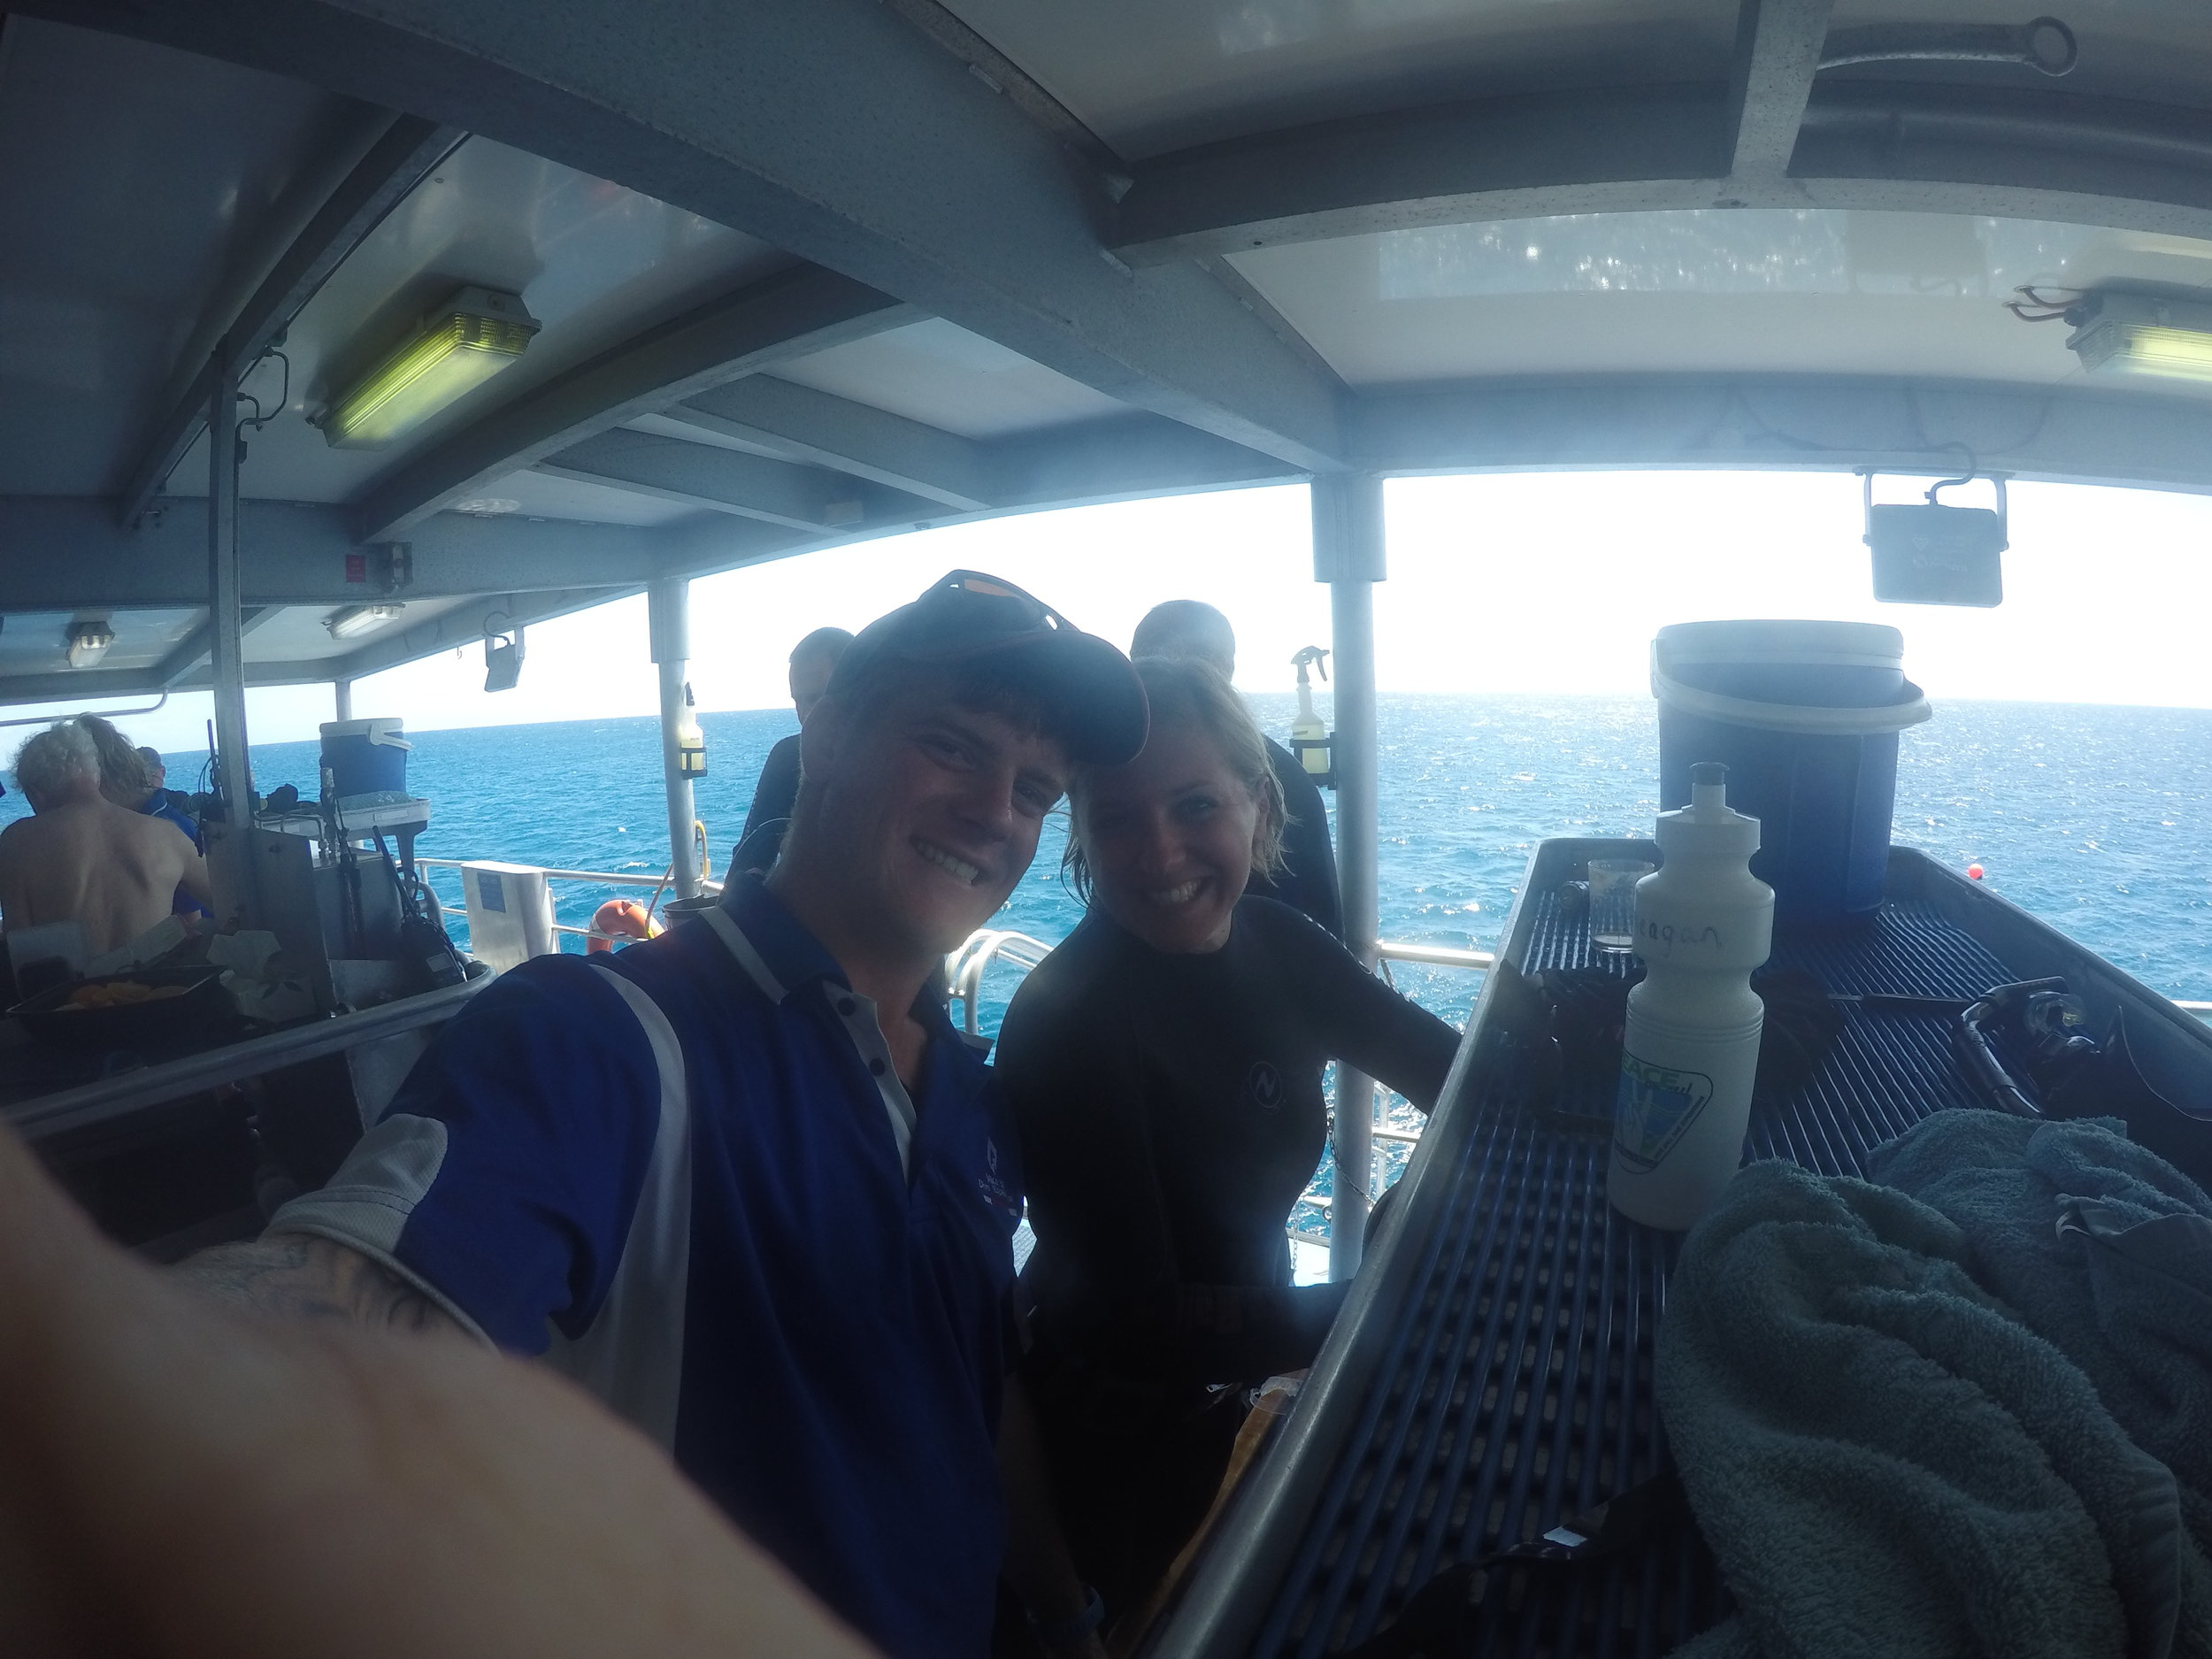 Outer GBR on Mike Ball boat